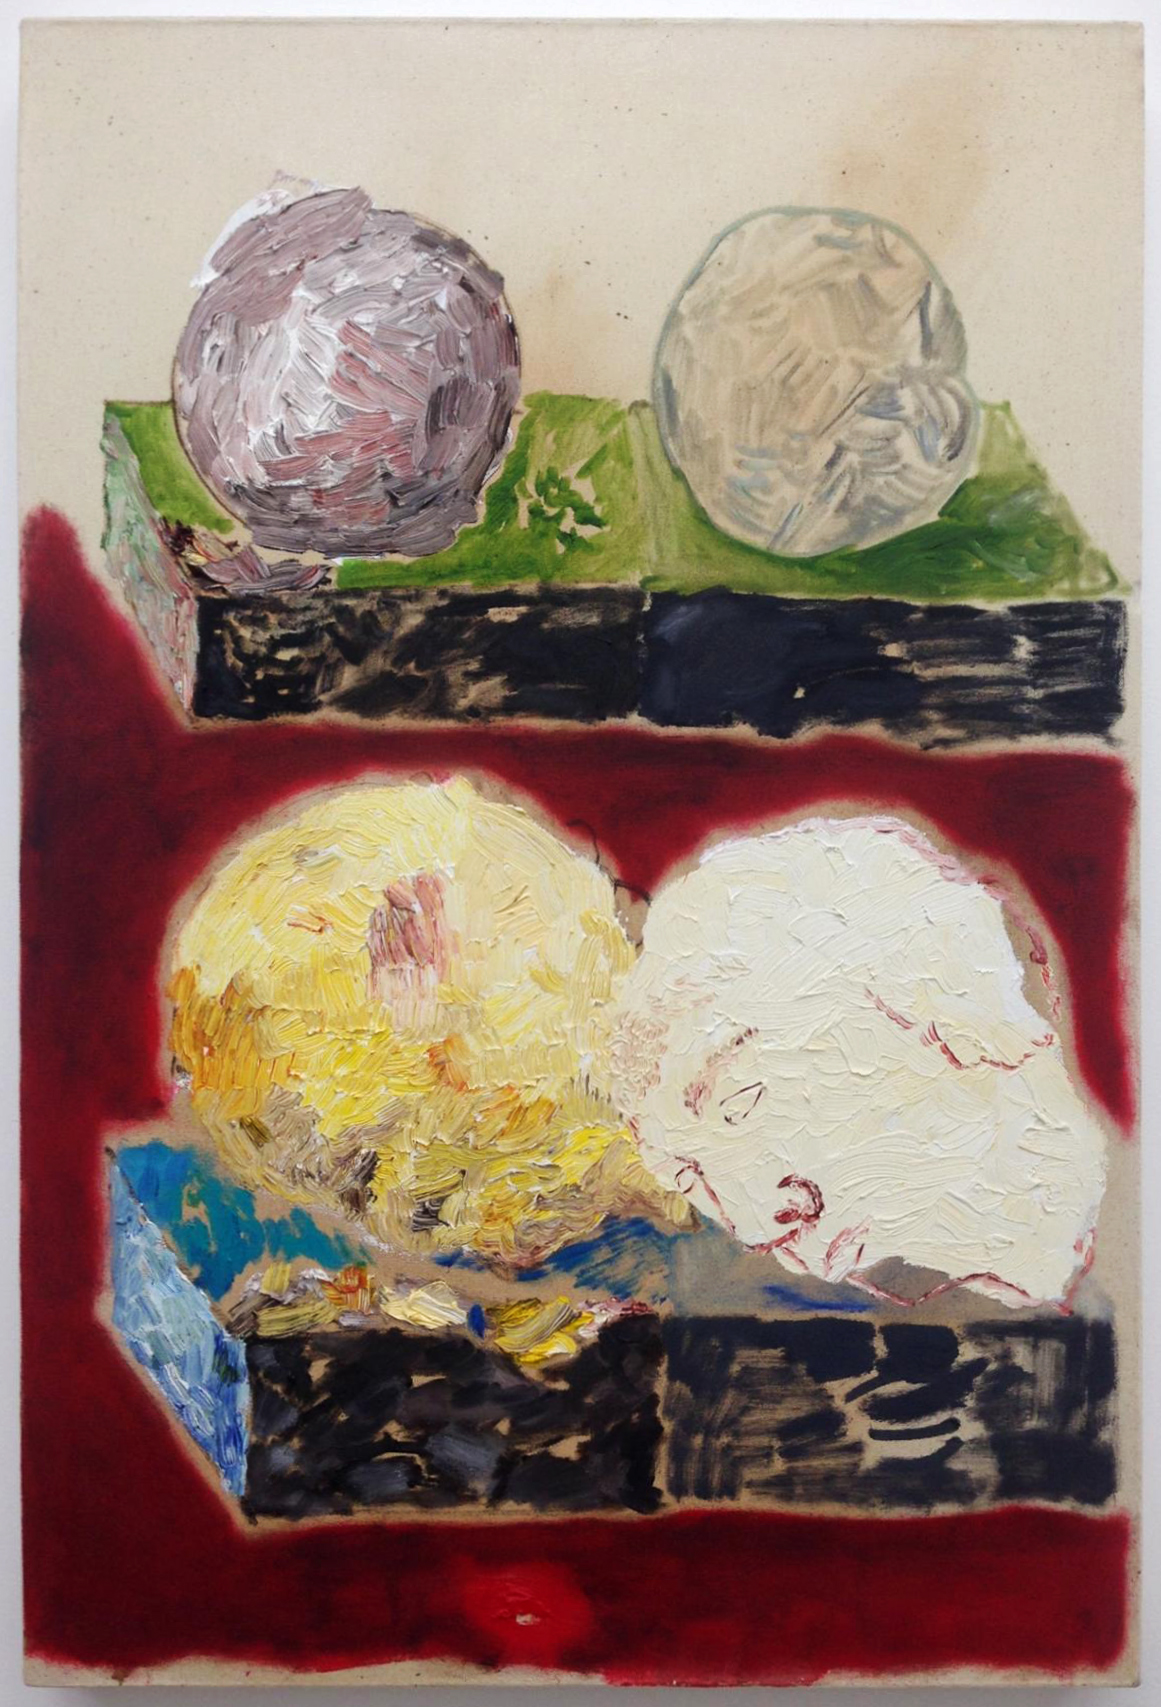 Love and Boredom, Proof 2,  2013  Oil on canvas  36 x 24 inches